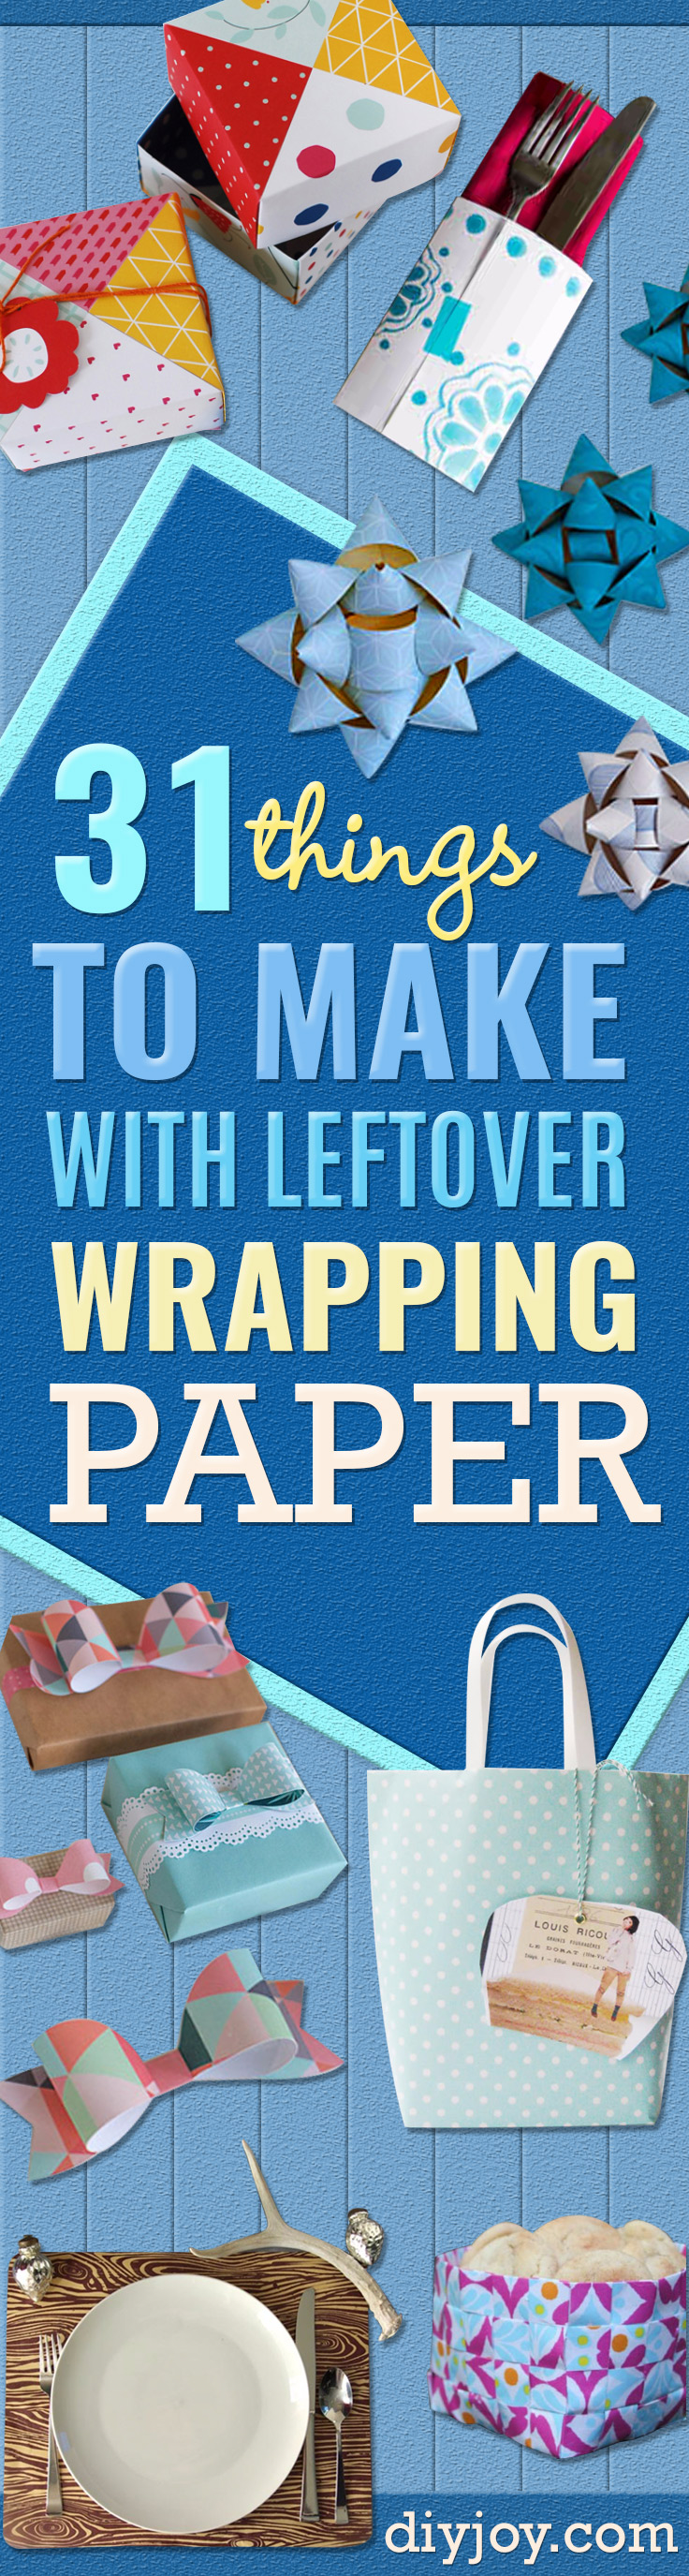 Cool Things to Make With Leftover Wrapping Paper - Easy Crafts, Fun DIY Projects, Gifts and DIY Home Decor Ideas - Don't Trash The Christmas Wrapping Paper and Learn How To Make These Awesome Ideas Instead - Step by Step Tutorials With Instructions http://diyjoy.com/diy-projects-leftover-wrapping-paper